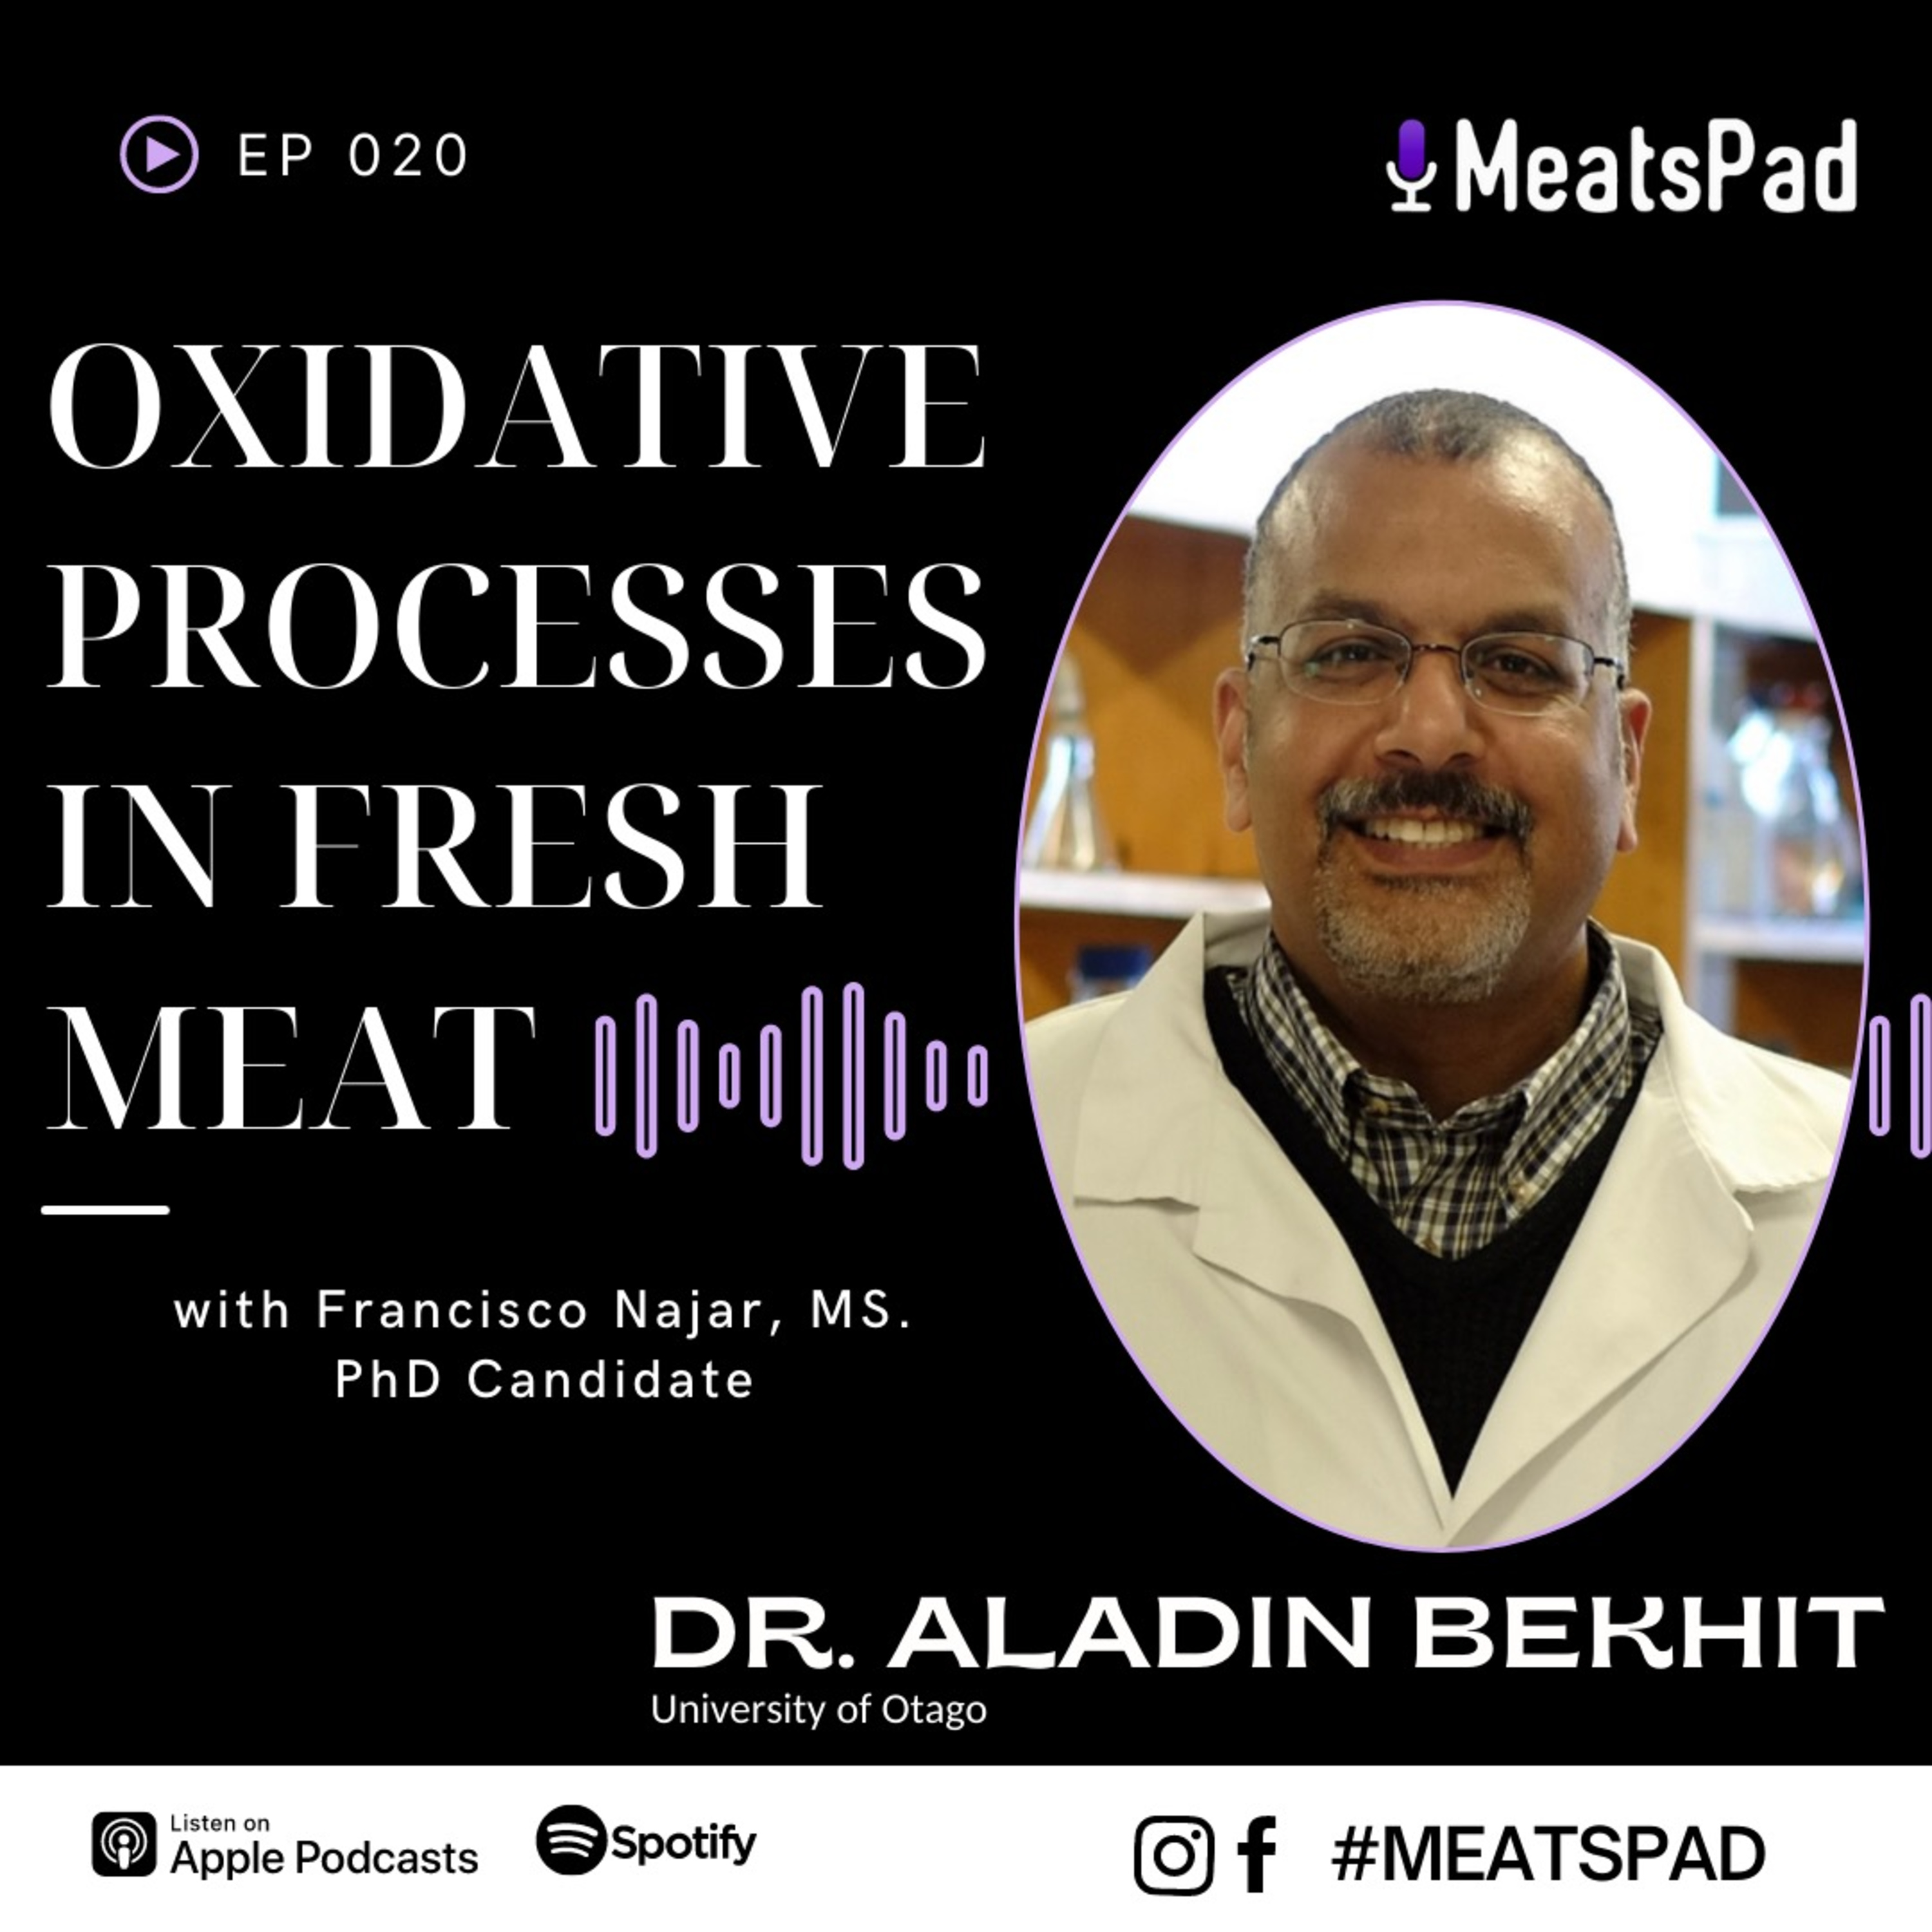 Oxidative Processes in Fresh Meat - Dr. Aladin Bekhit